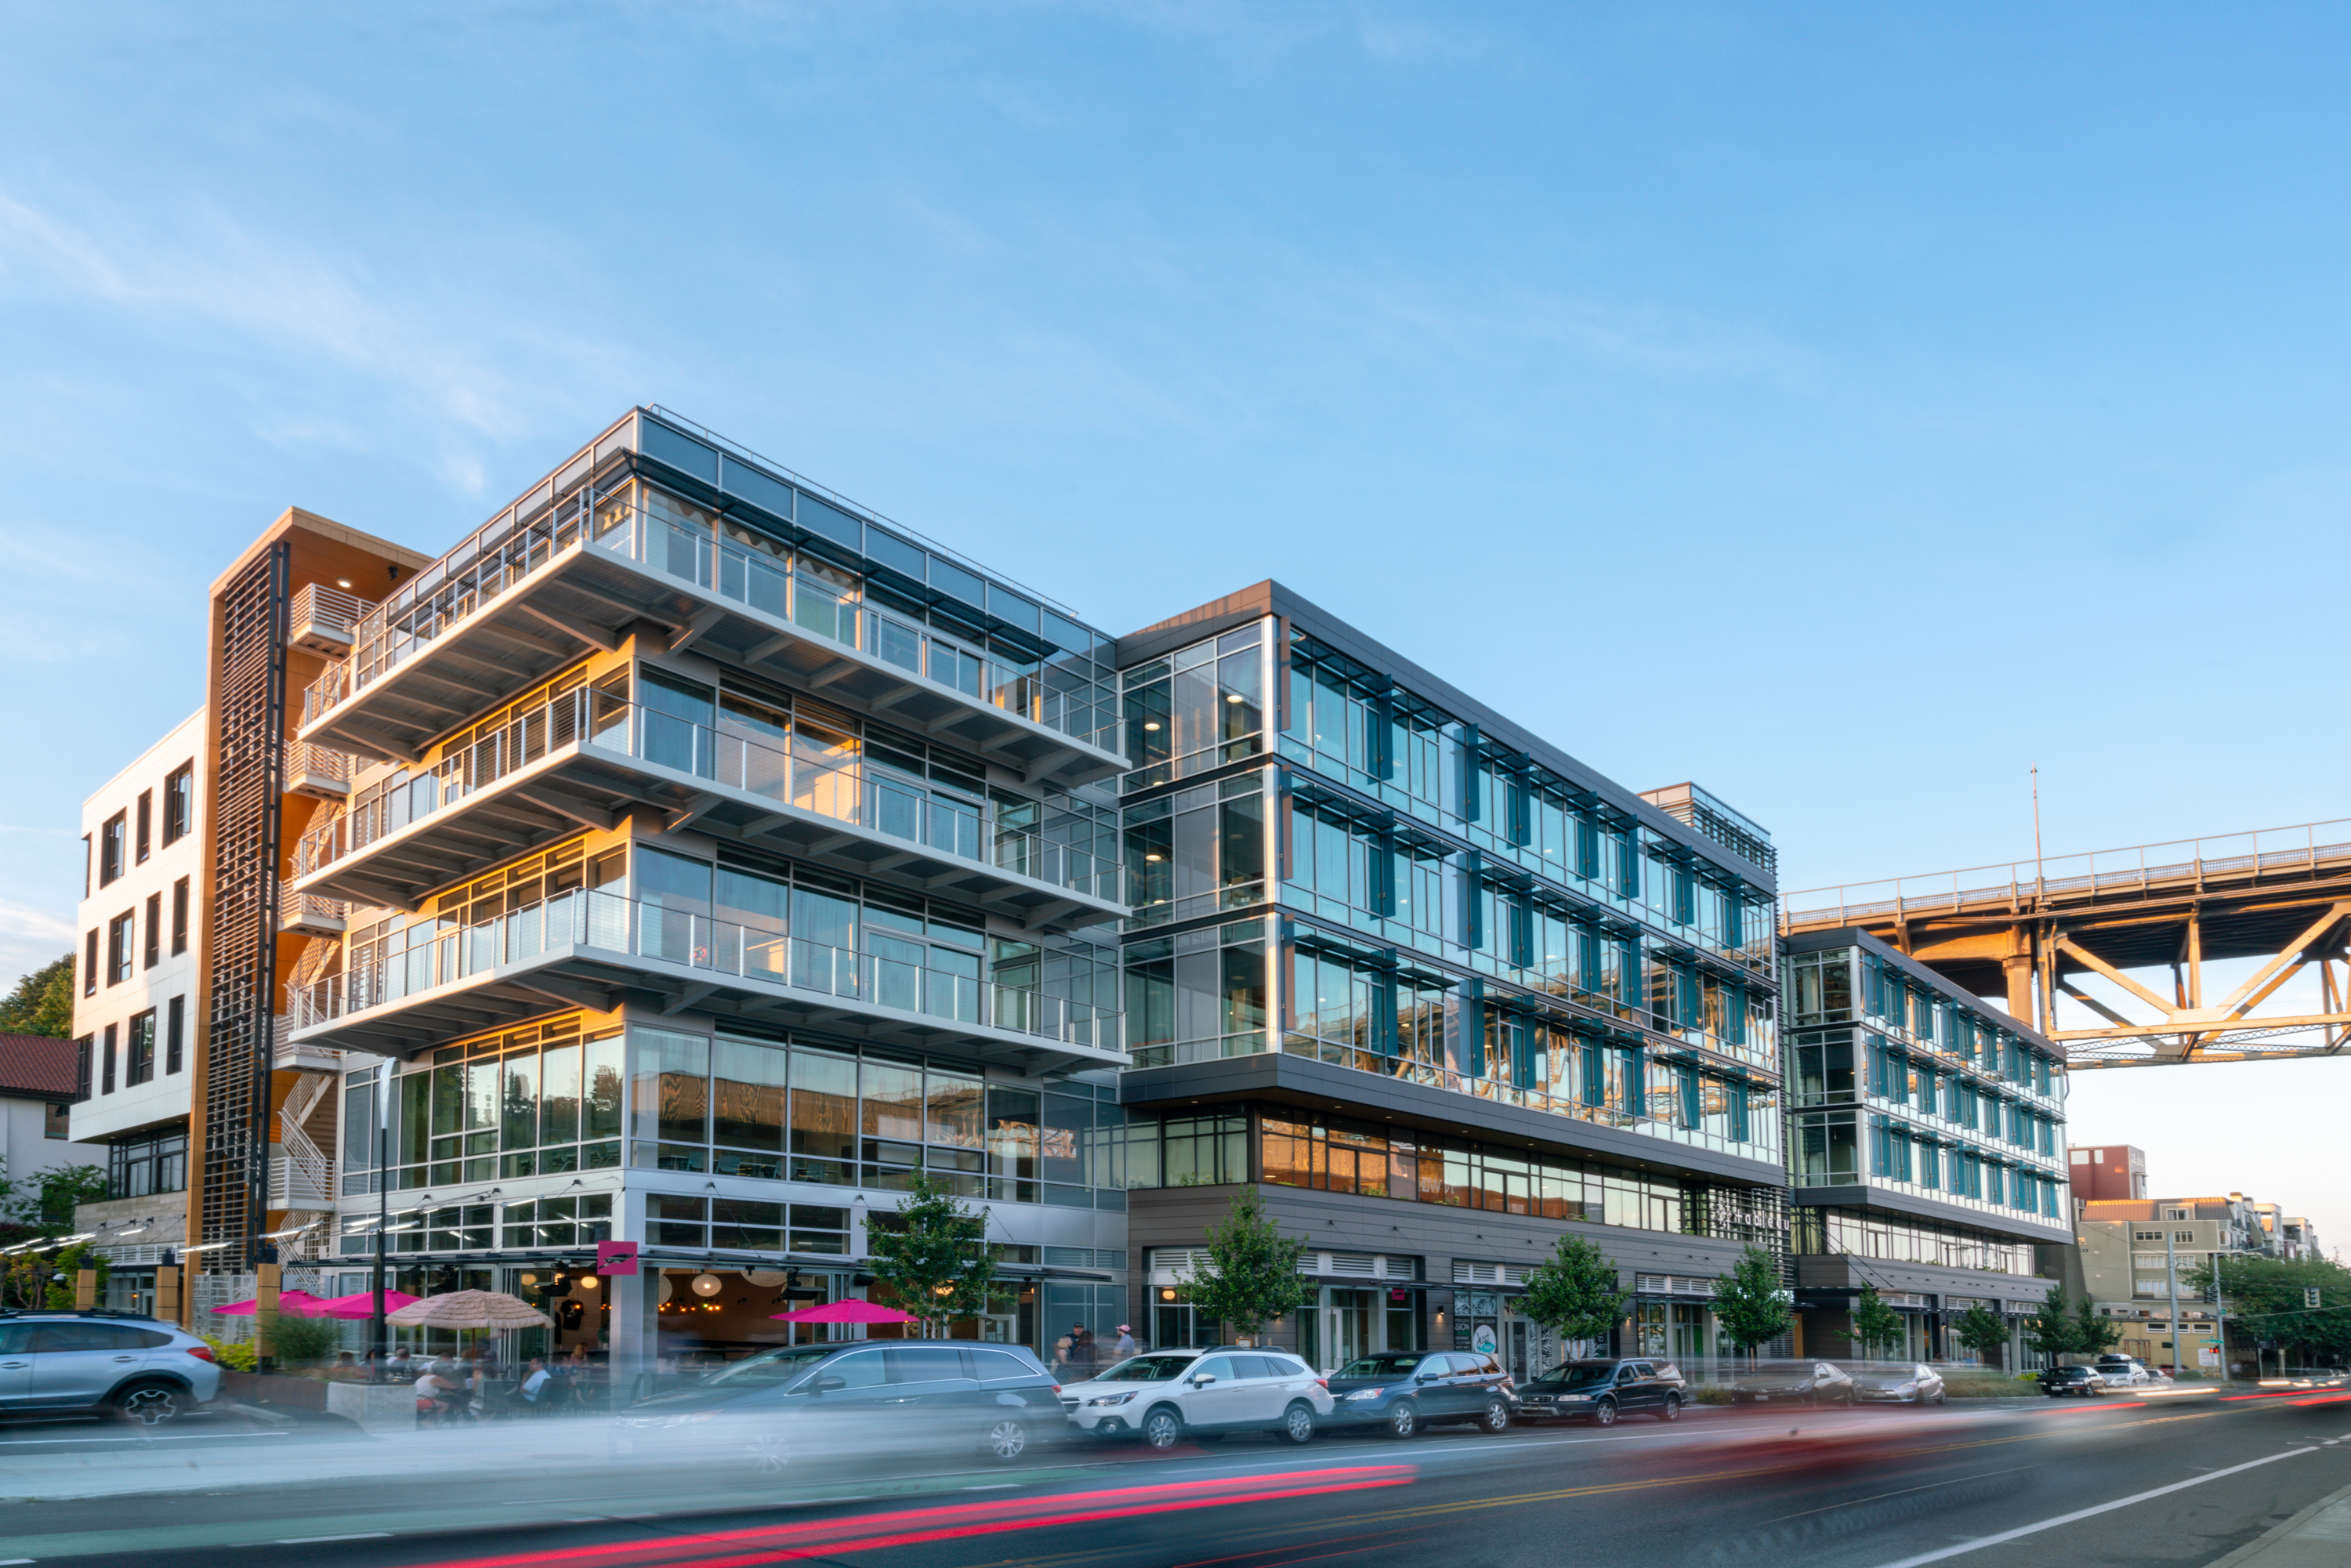 LEED Gold Data 1 building in Washington